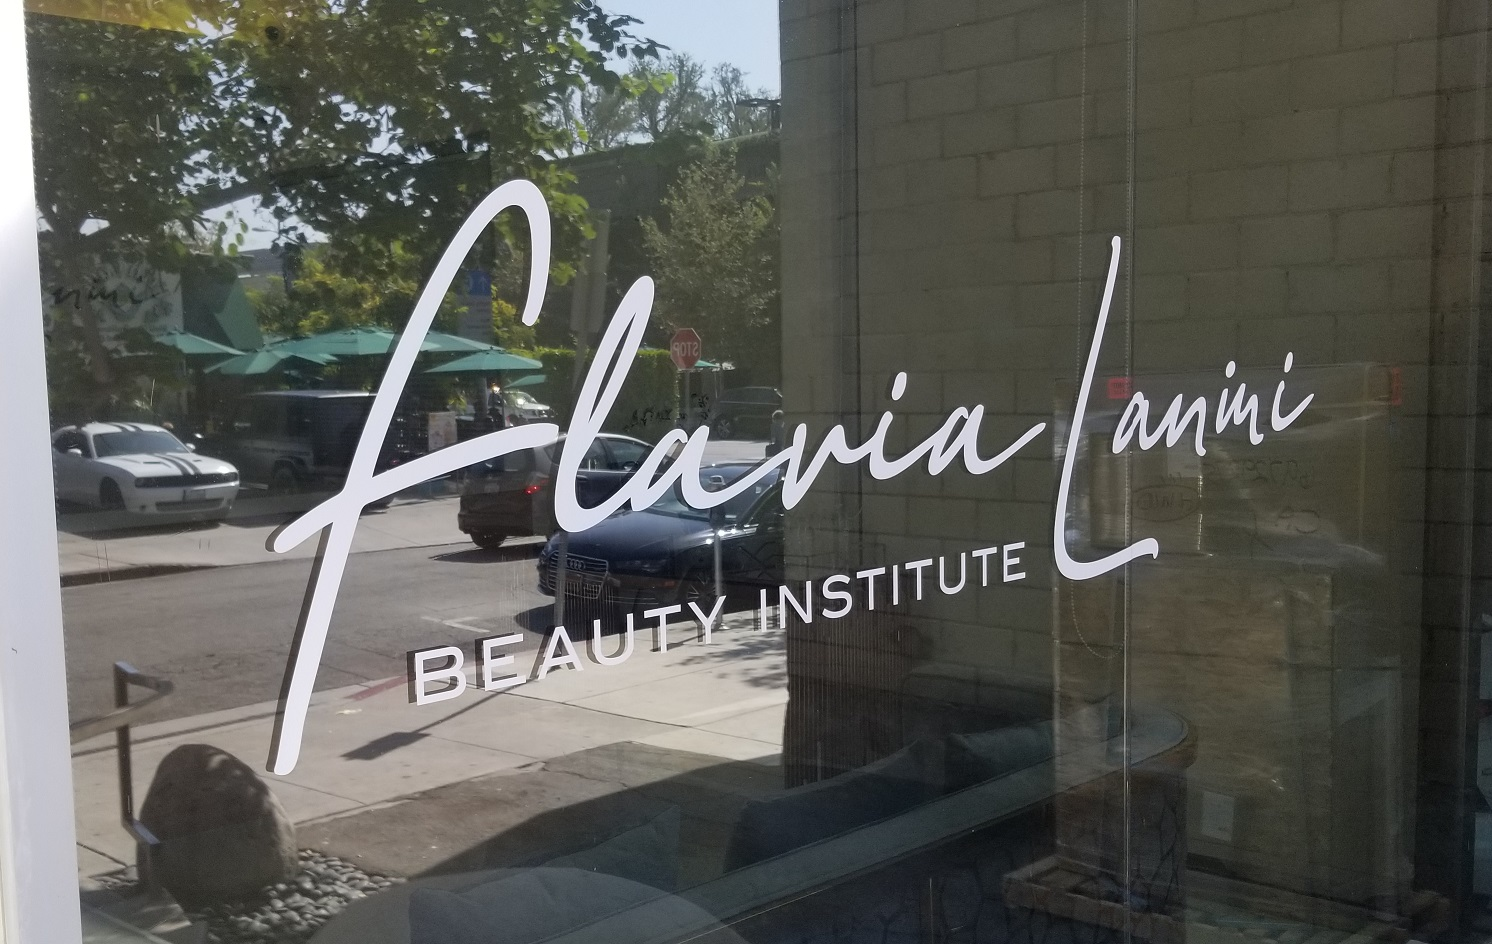 storefront window graphics, clinic window graphics, clinic sign, spa window graphics, spa sign, salon window graphics, salon sign, beauty salon, beauty spa, beauty clinic, Window Graphics, window lettering, Vinyl Window Signage West Hollywood, West Hollywood Sign Company, West Hollywood Outdoor Sign, Flavia Lanini West Hollywood Window Sign, Premium Sign Solutions Los Angeles, Los Angeles Sign Makers, Digital Printing Company West Hollywood